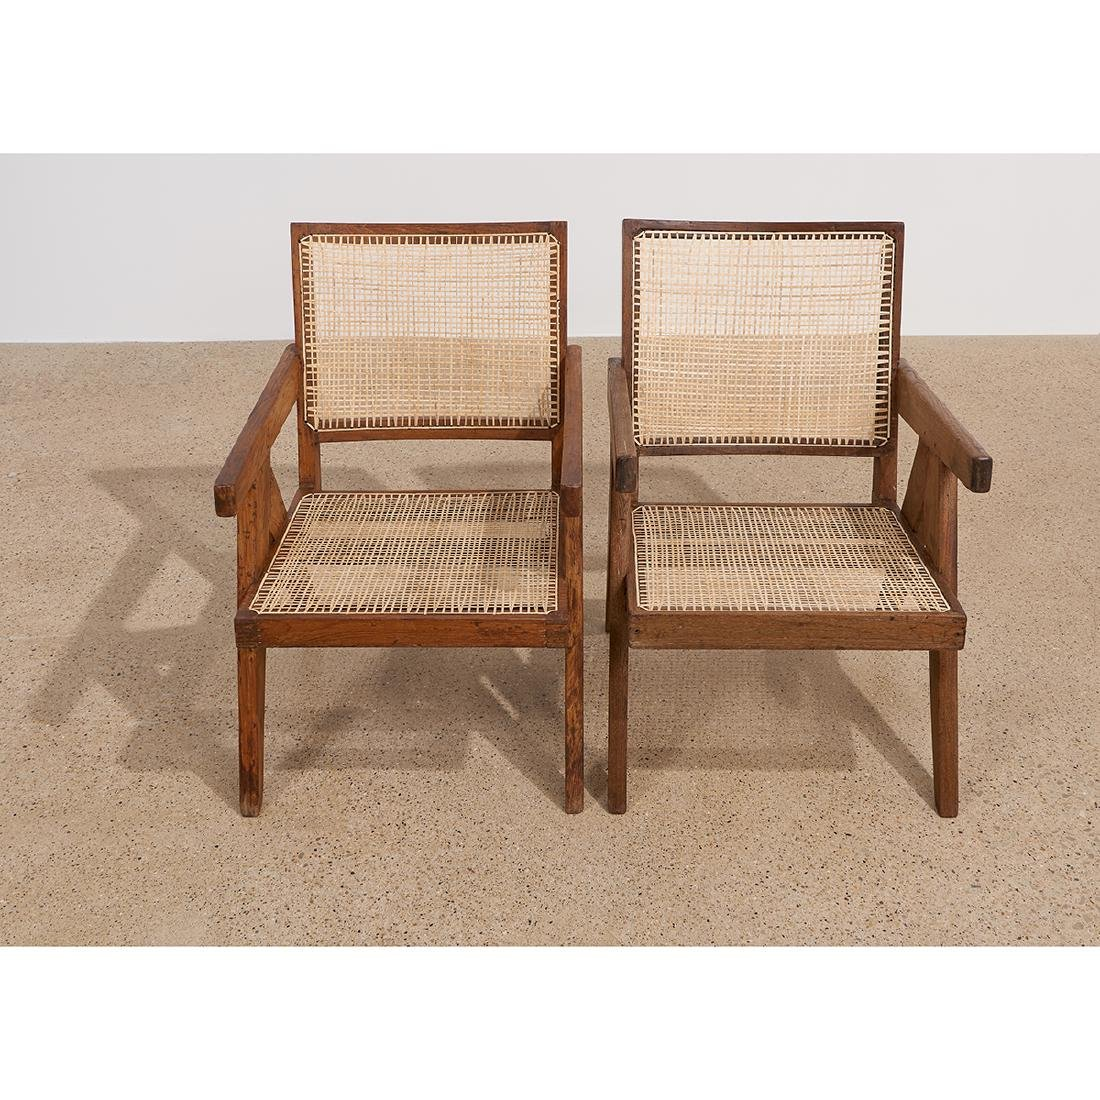 Pierre Jeanneret Low Lounge Chairs, pair - 5